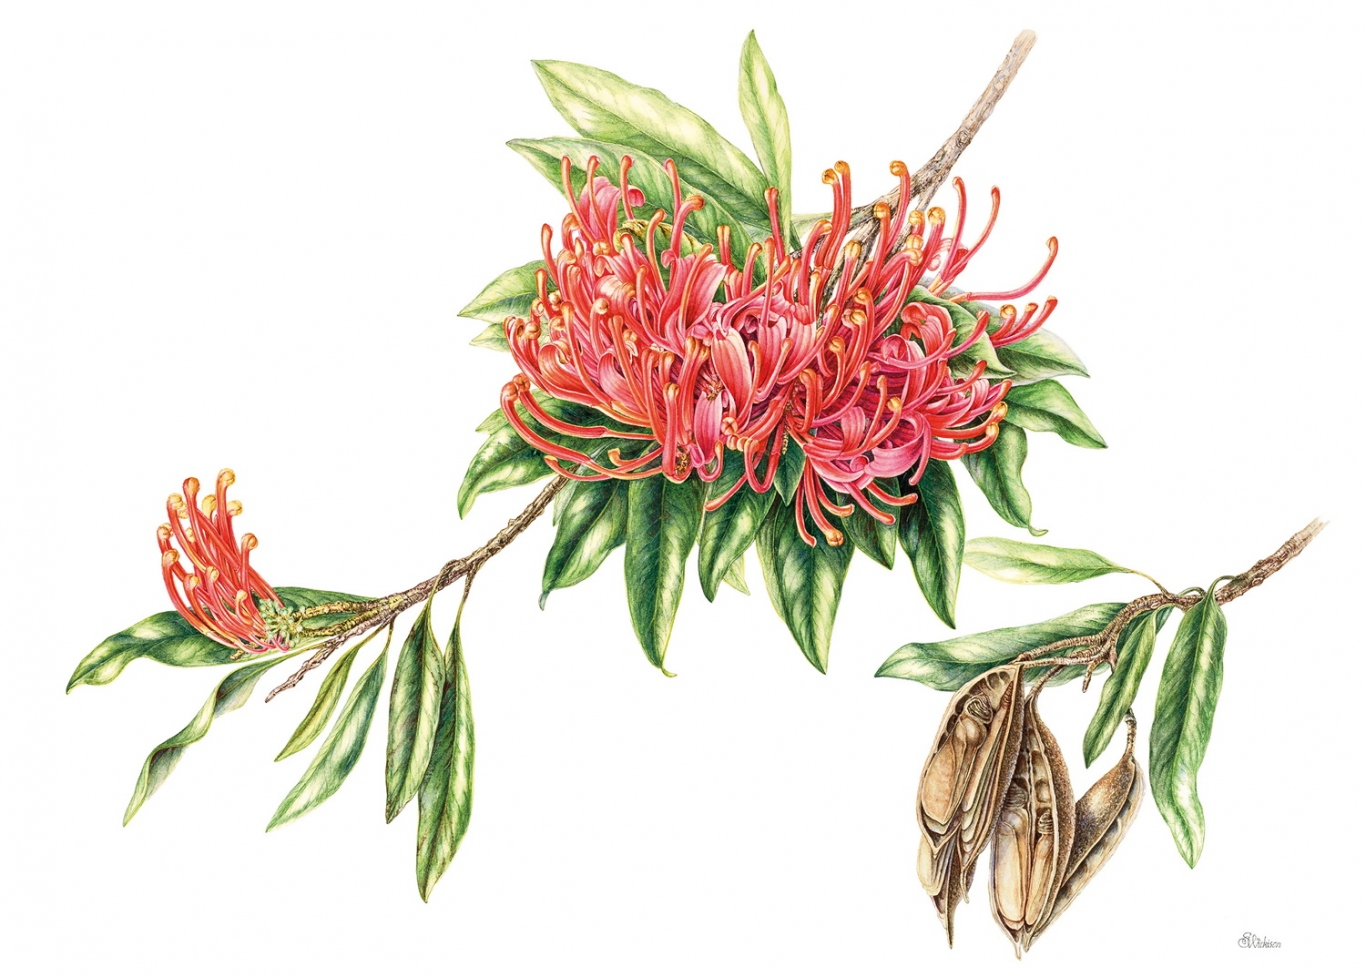 Alloxylon flammeum (Tree Waratah) by Sue Wickison.